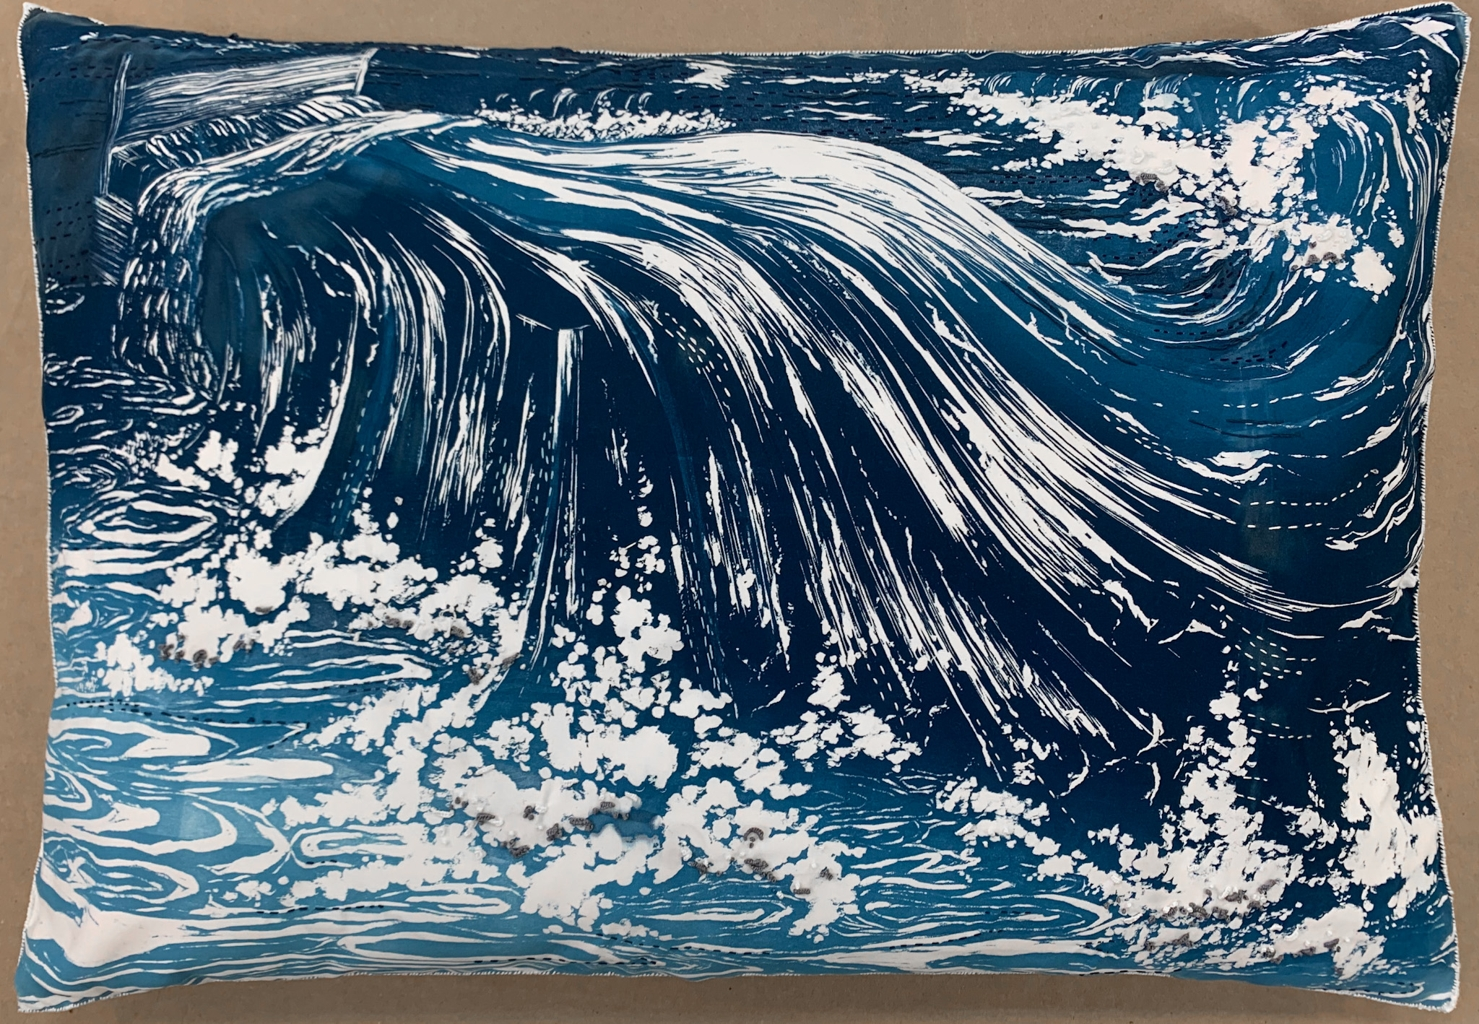 Claire Gustafson, Restless, Woodcut Print on Pillow & Embroidery, 2020, 20 x 28